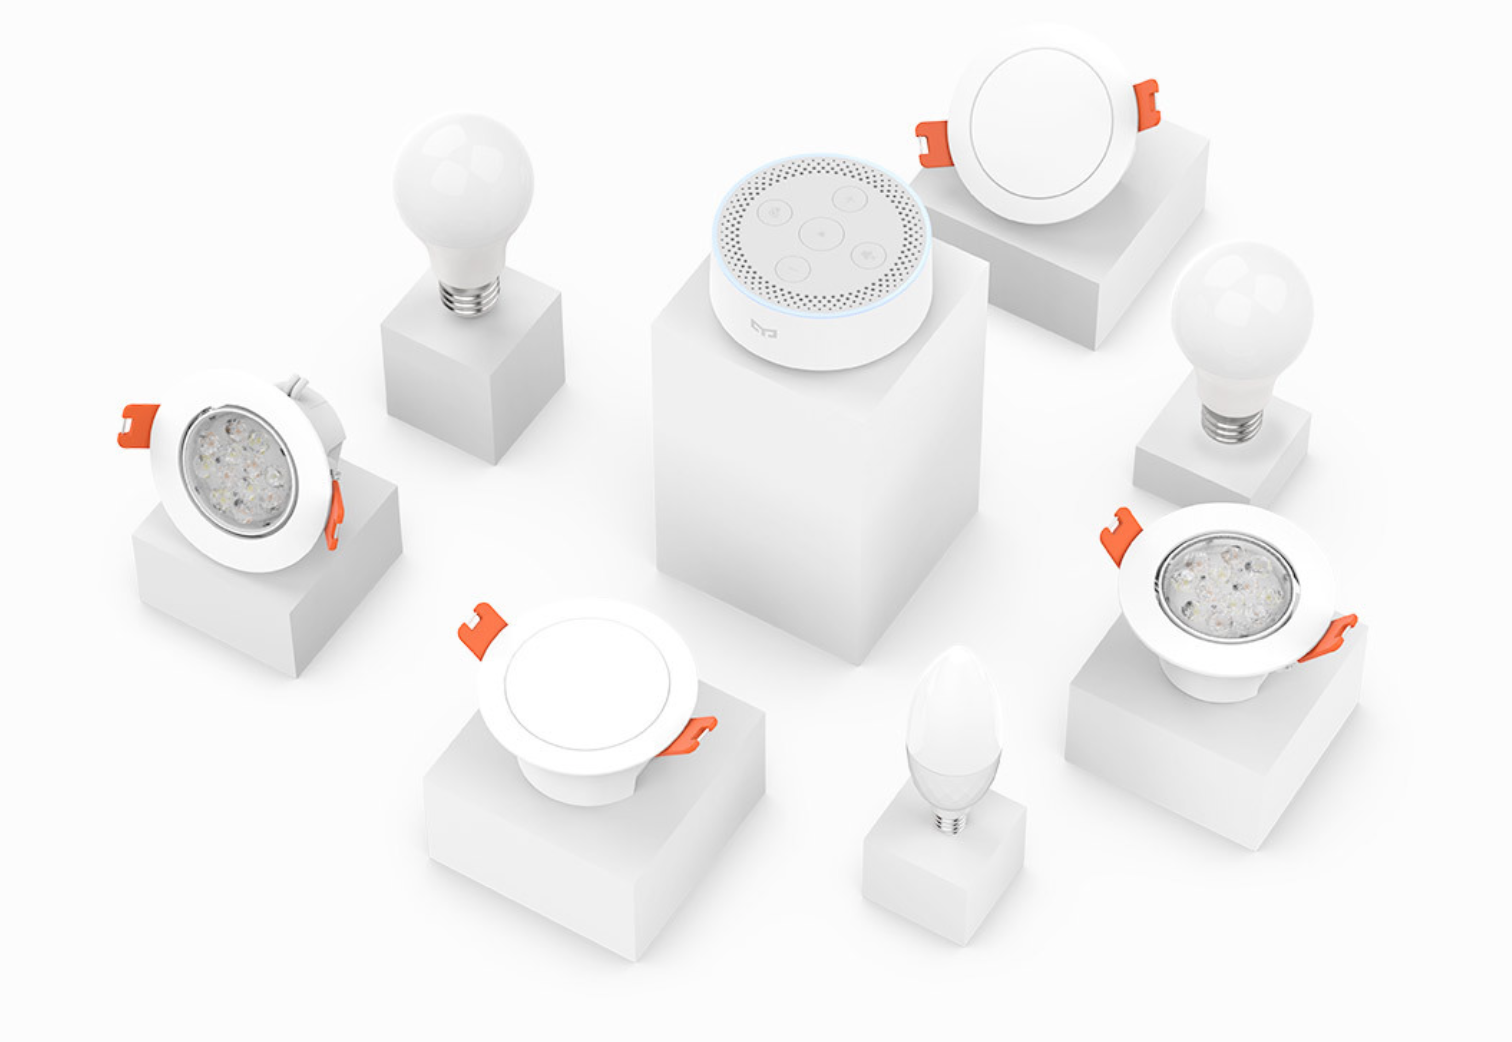 Yeelight Mesh a new set of light bulbs on the Xiaomi offer